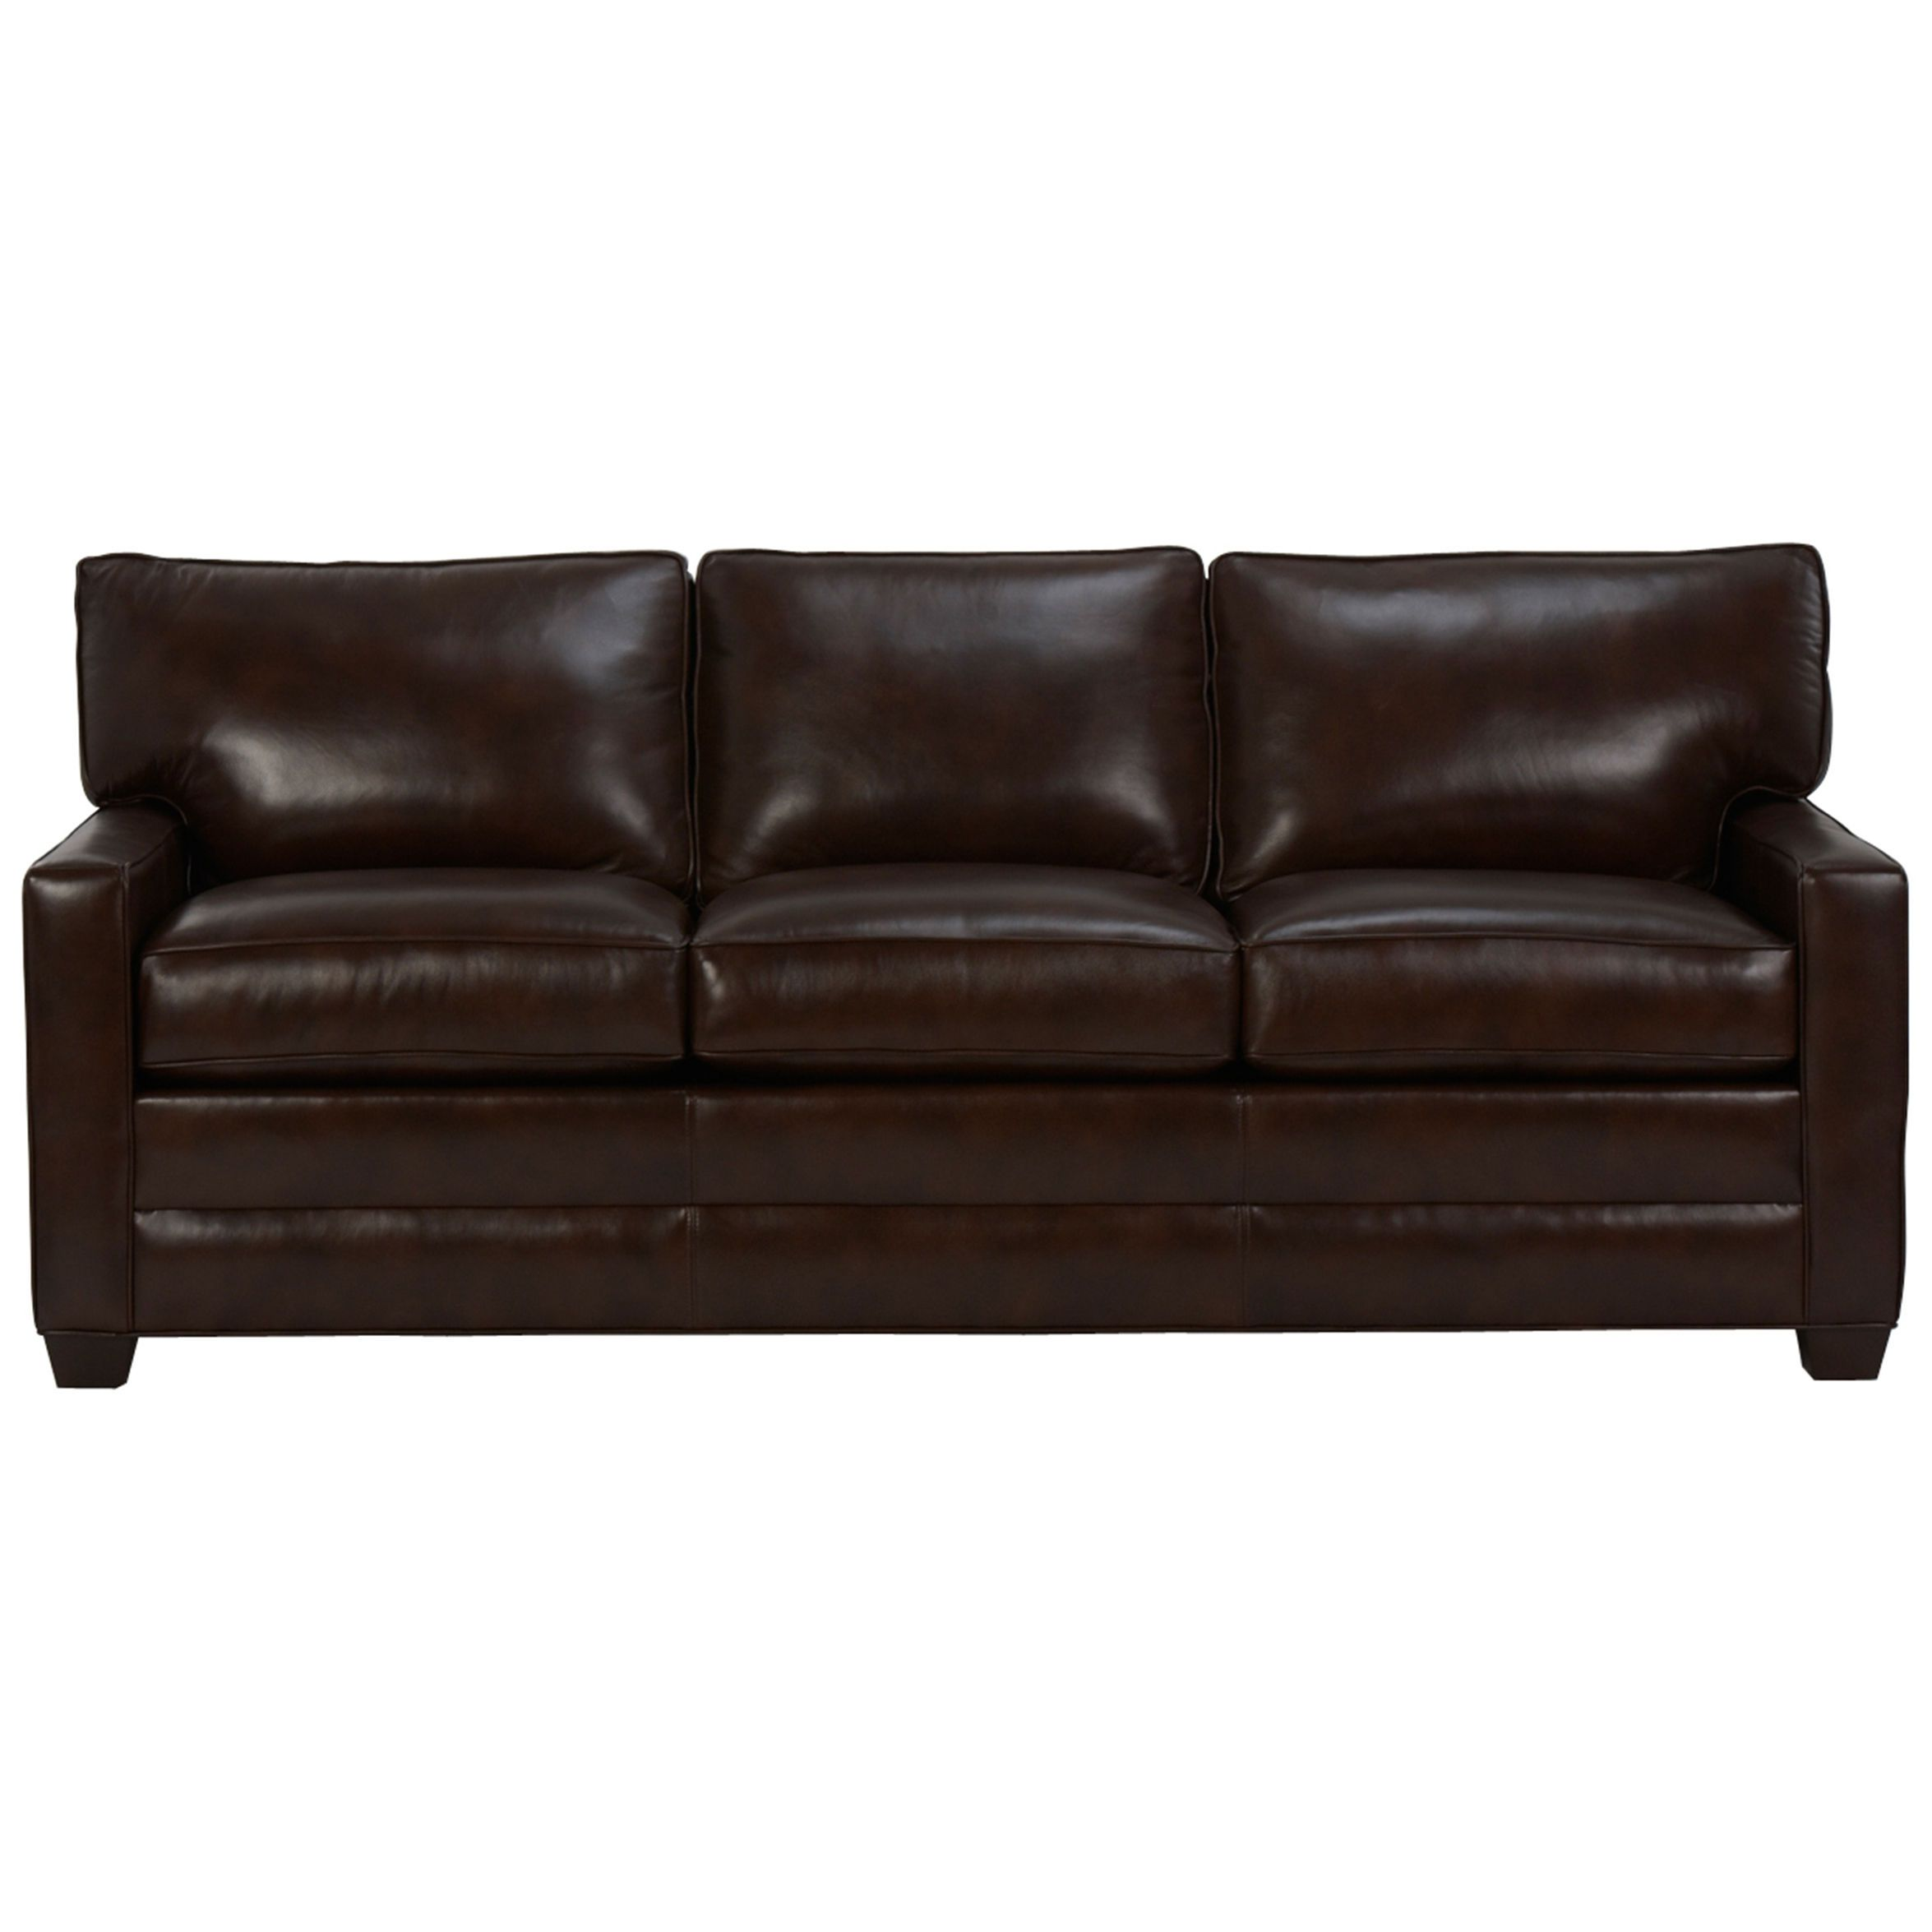 Bennett Three Cushion Track Arm Leather Sofas Ethan Allen Us Straight Arm Version Available In Fabric Leather Sofa Sofa Living Room Sofa